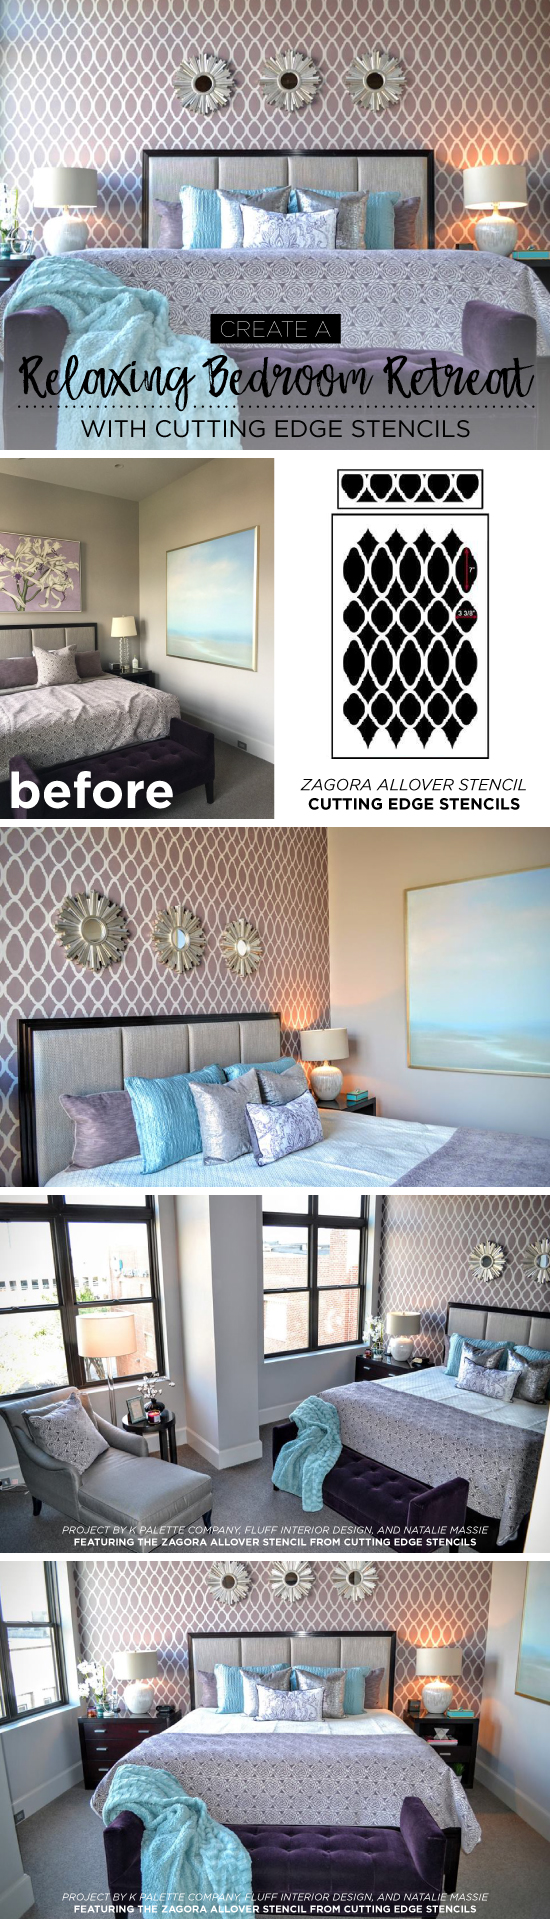 Create A Relaxing Bedroom Retreat Using Stencils - Stencil Stories ...